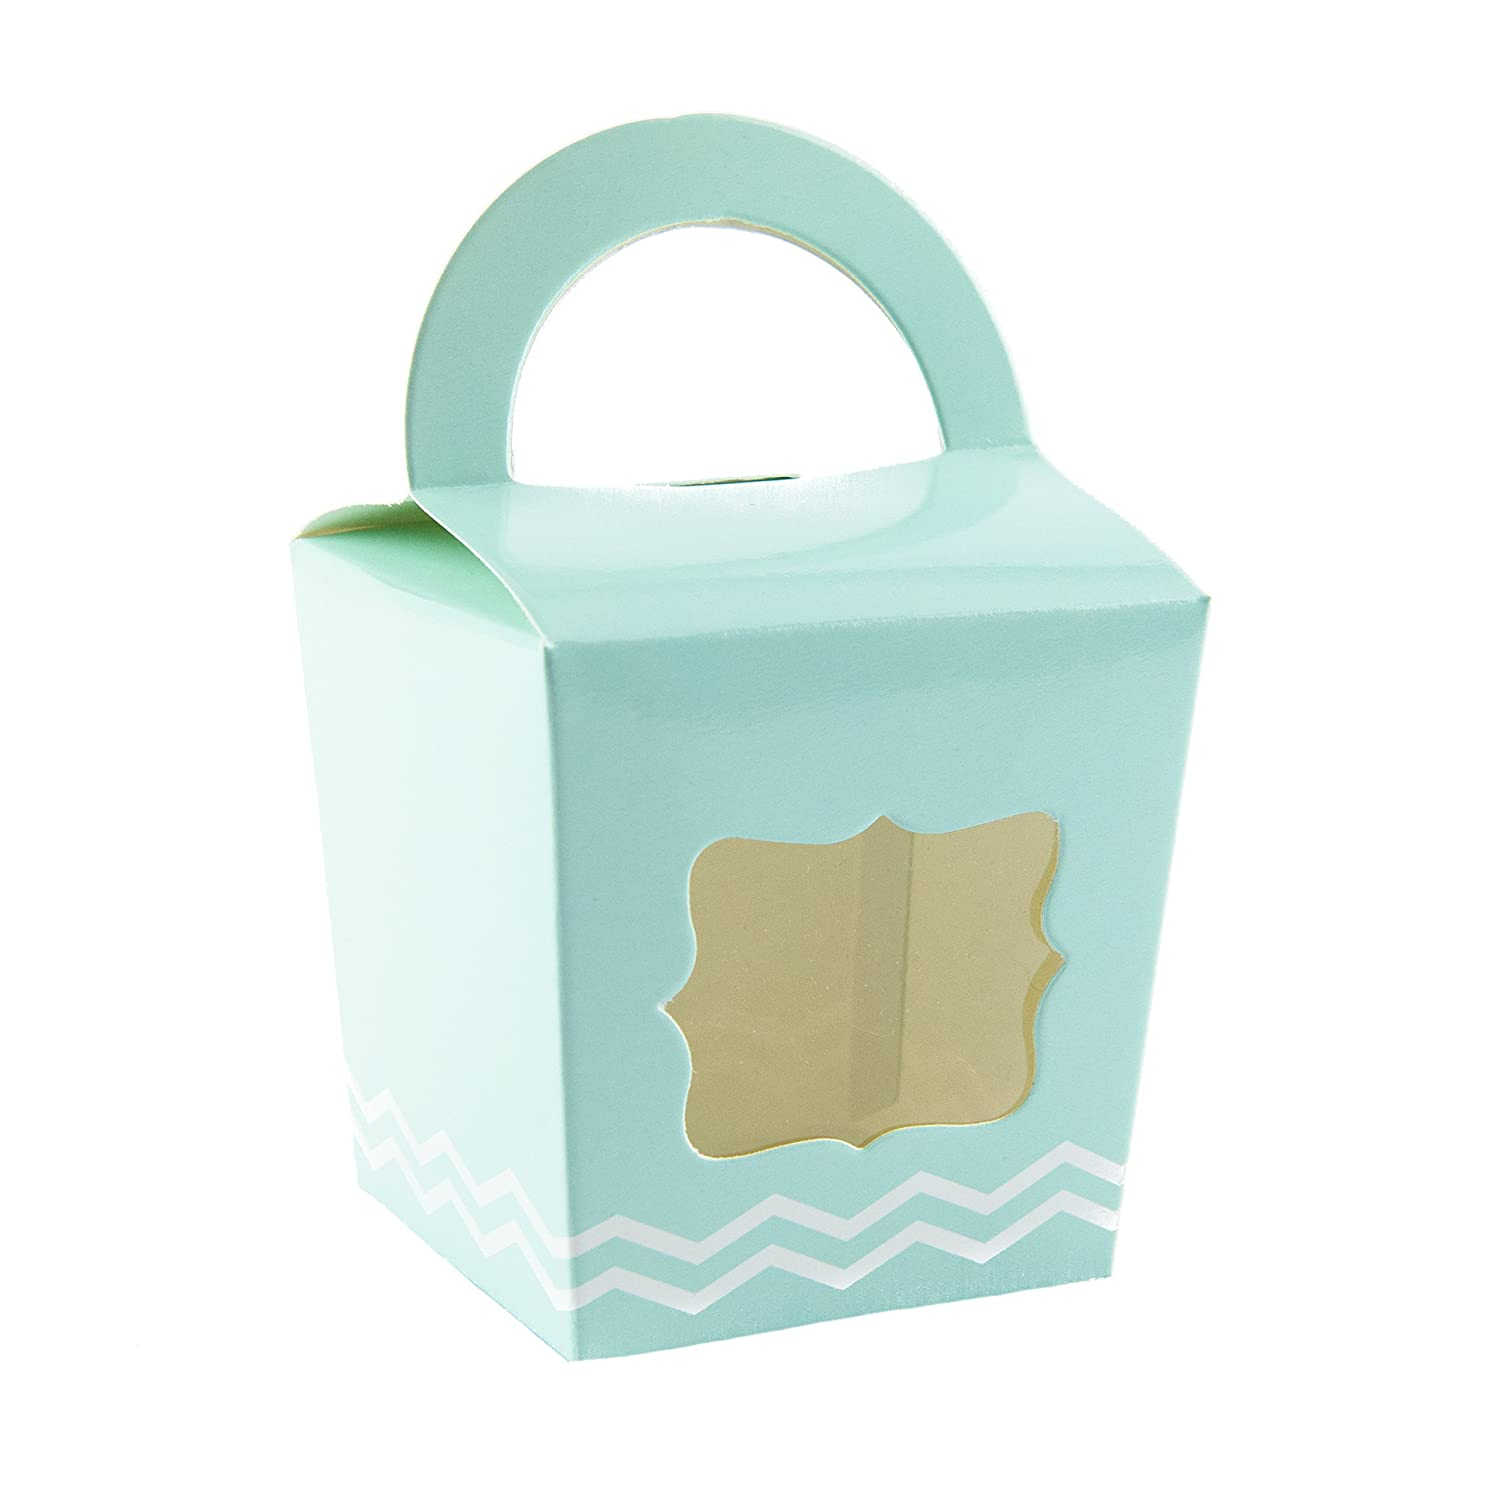 10 x Duck Egg Blue Mint Green Single Cupcake Box With Handle And Zigzag Pattern Ibex Retail